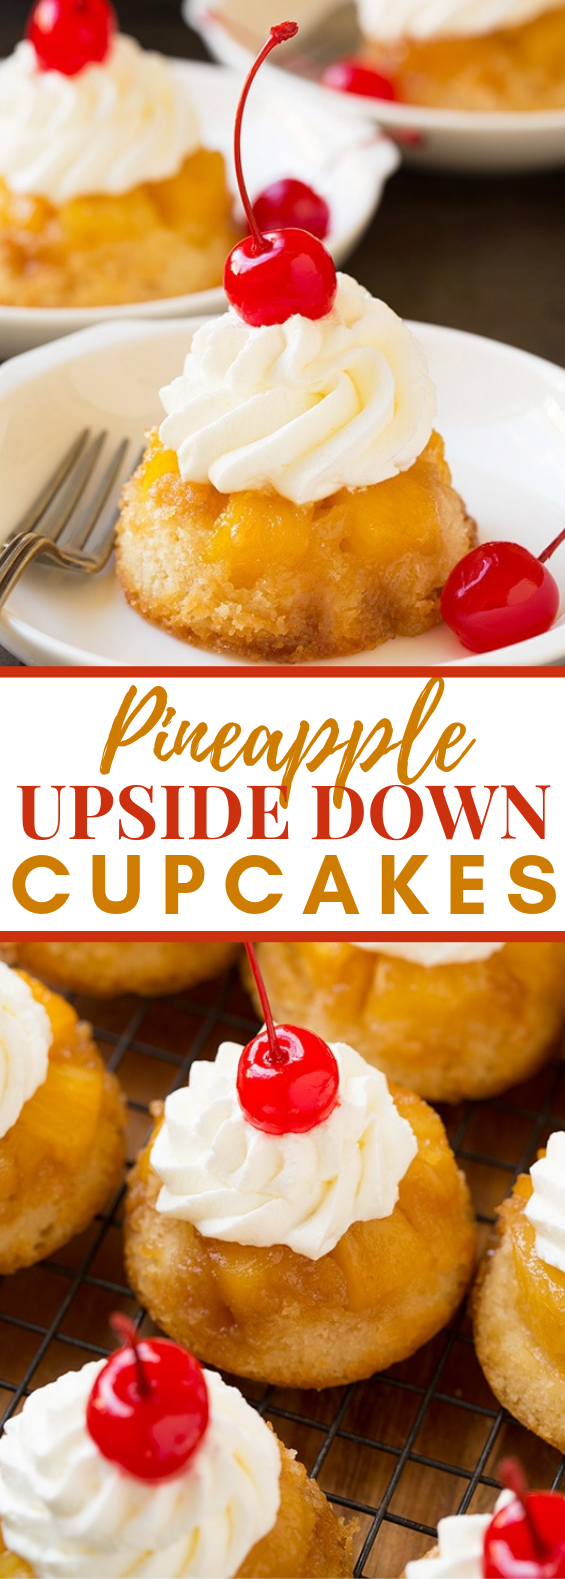 Pineapple Upside Down Cupcakes #desserts #easter